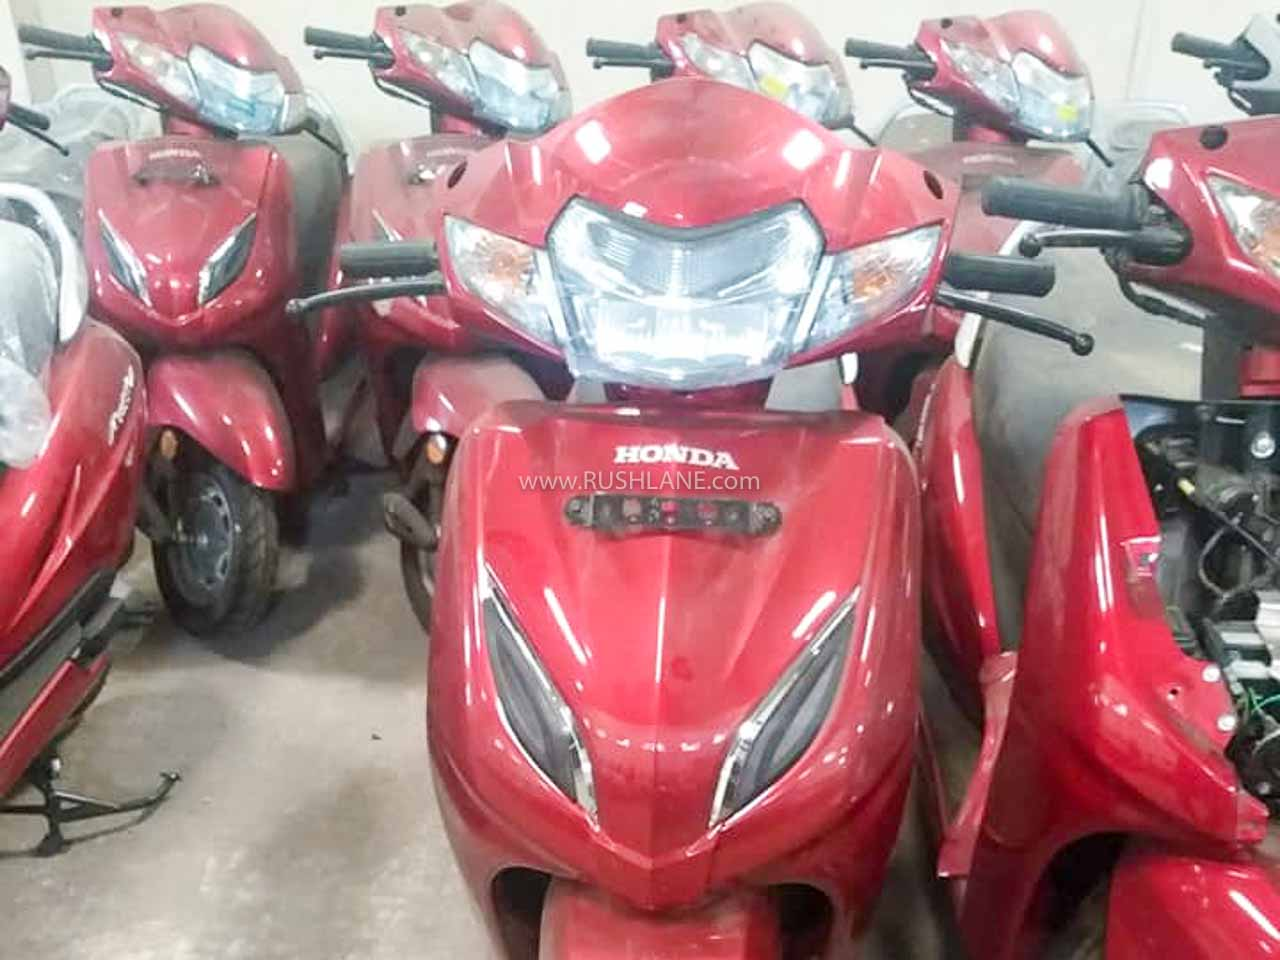 Old Honda Activa scooter